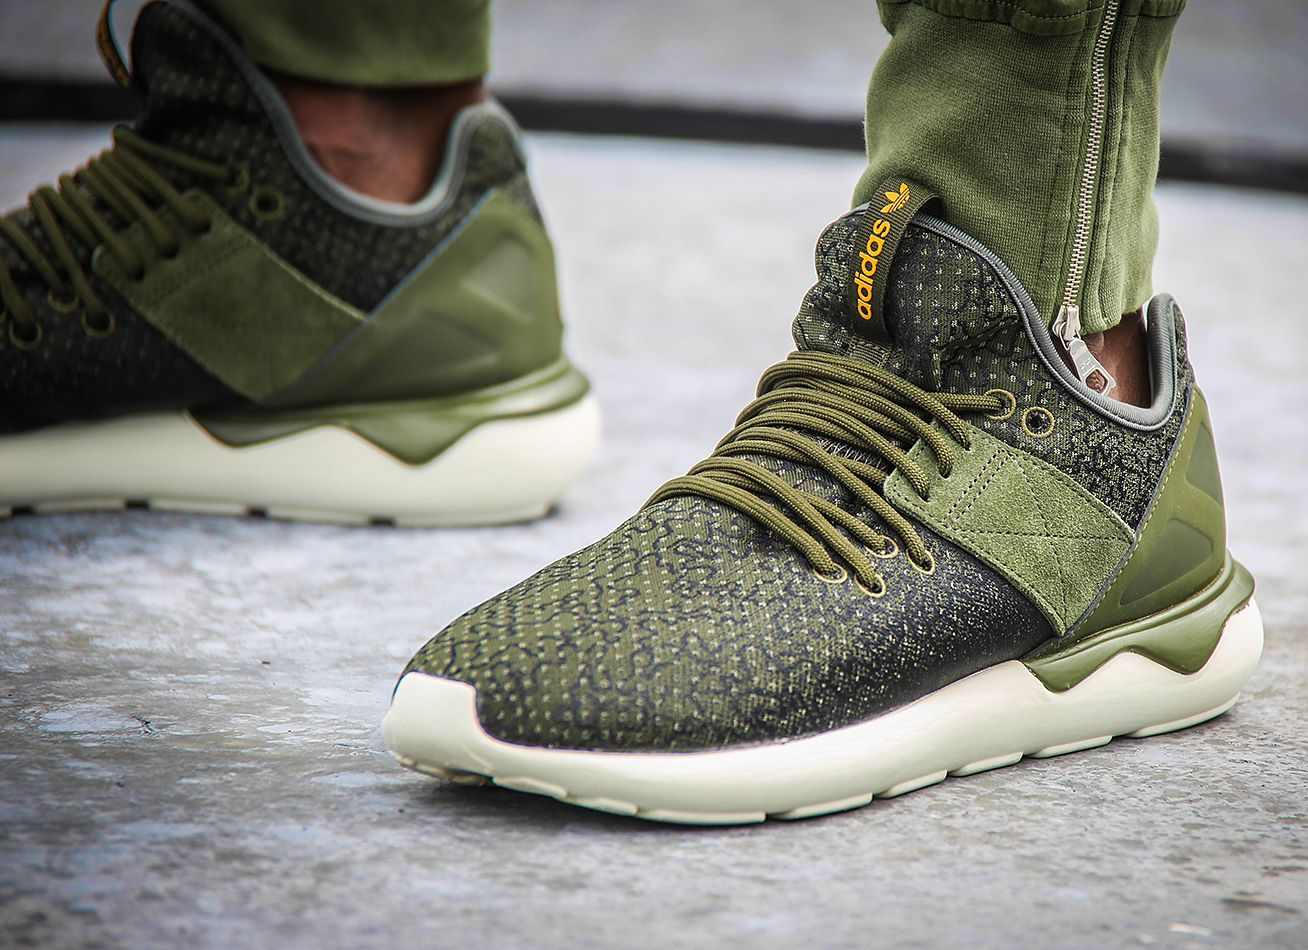 the best attitude 1623b 63a2d Adidas Tubular Runner S Olive | Sneakers in 2019 | Shoes ...